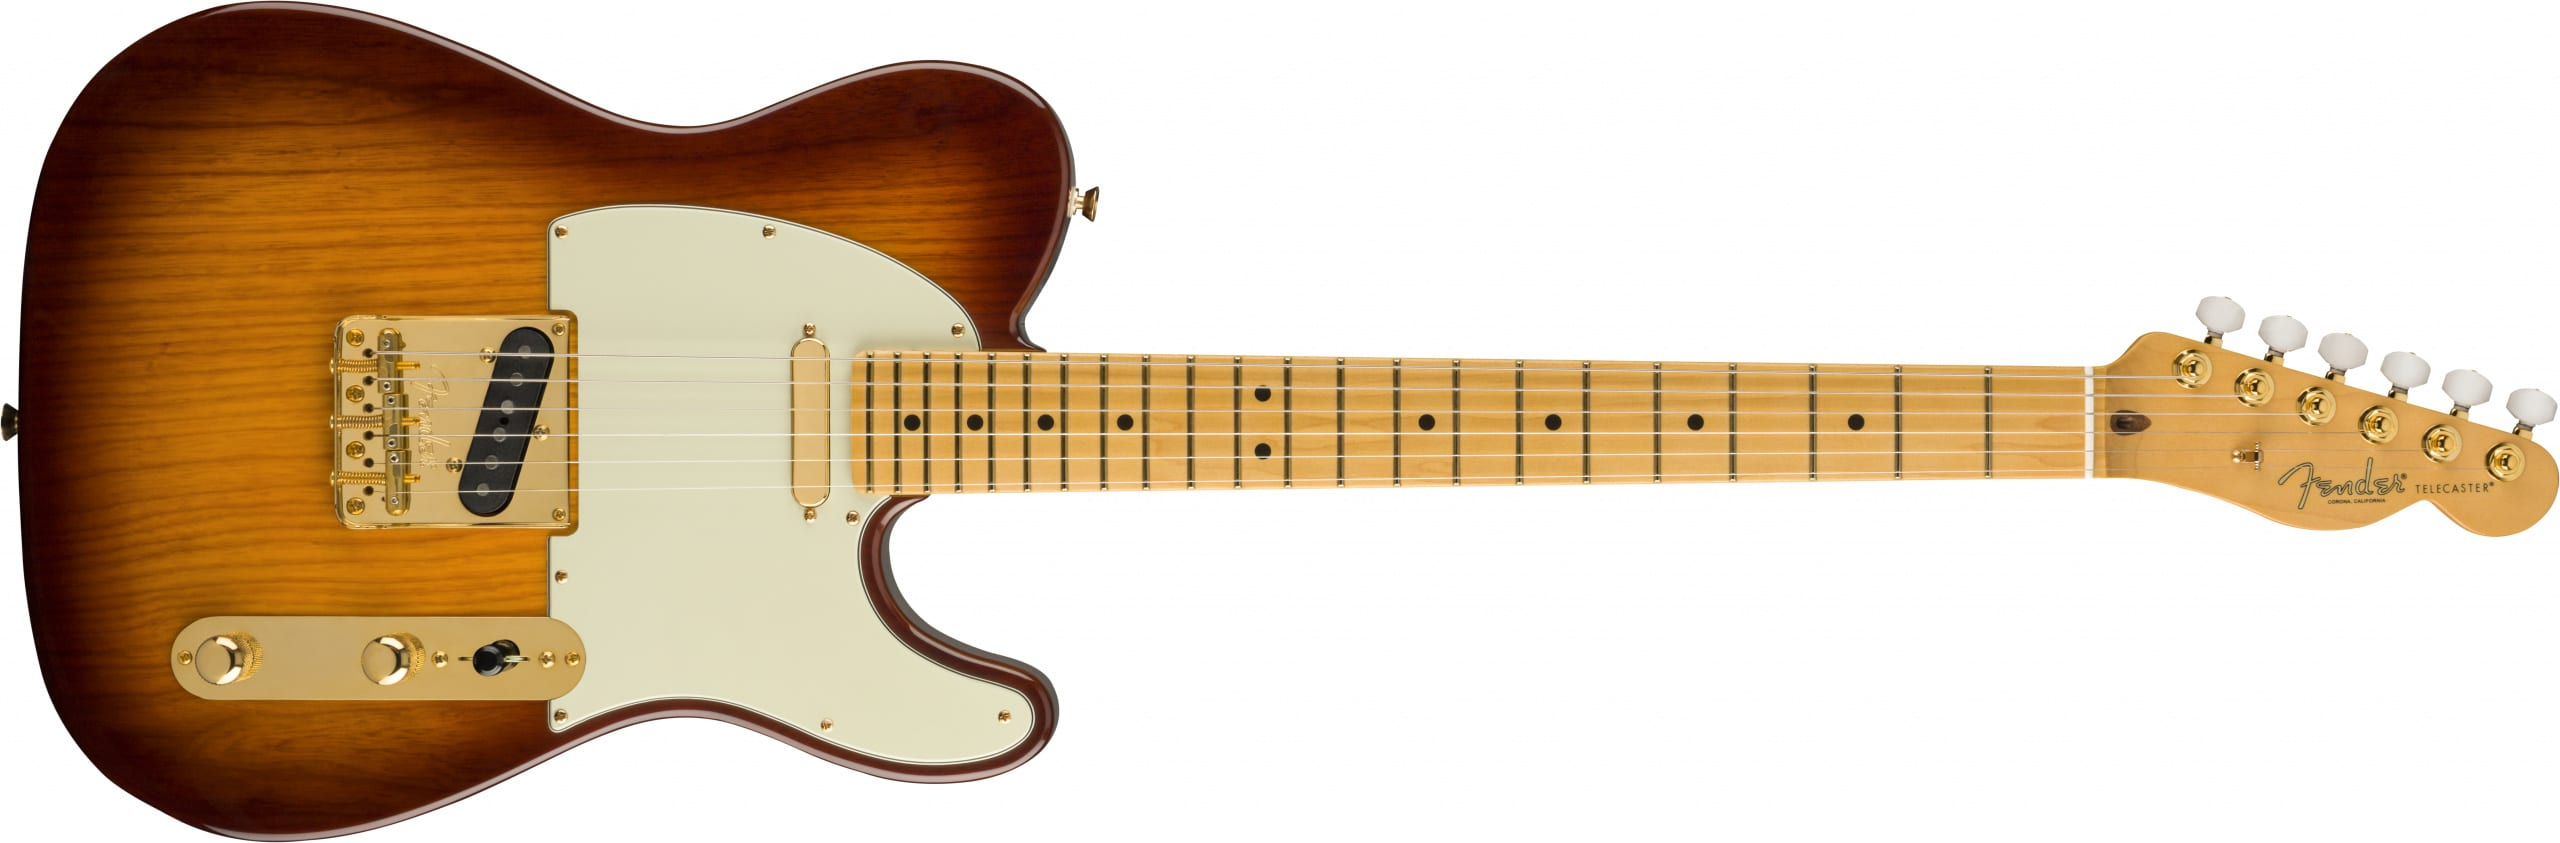 75th Anniversary Bourbon Burst Tele